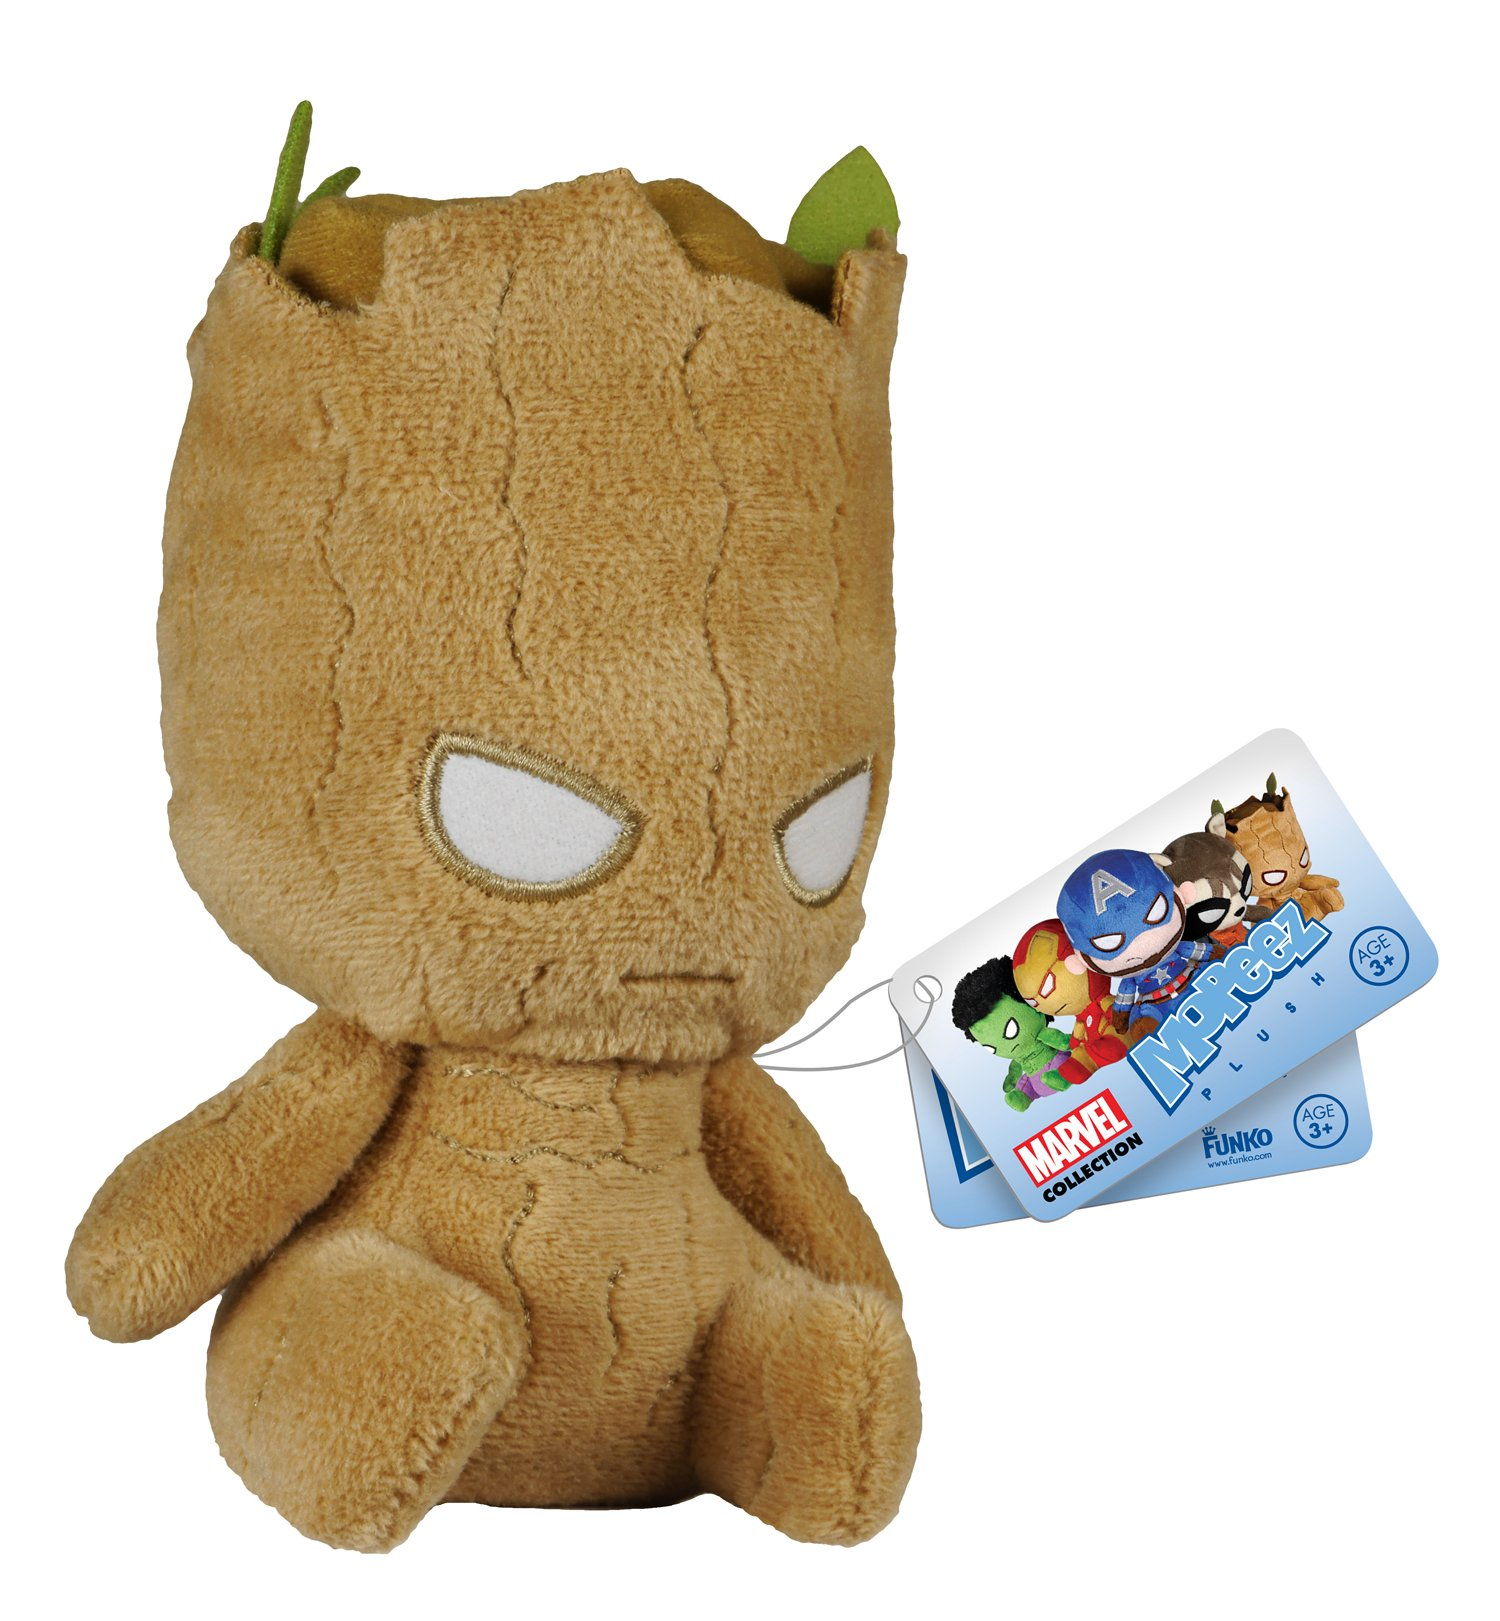 Buy Marvel Guardians Plush Now!